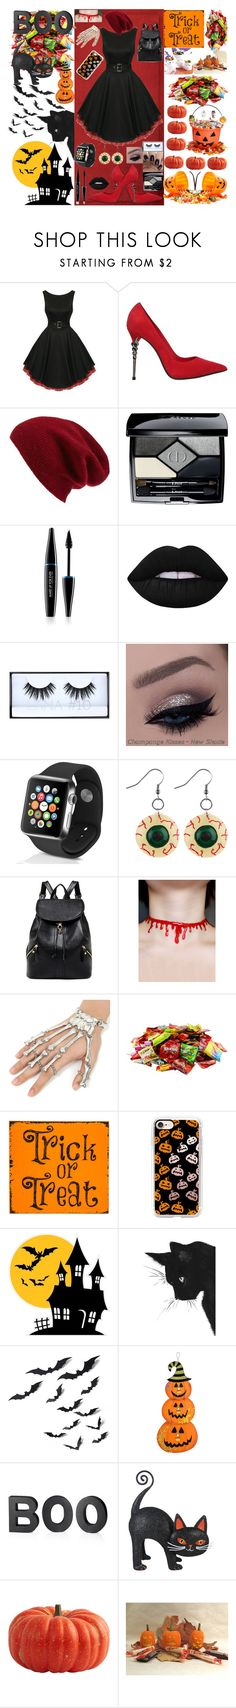 """""""Halloween"""" by zelephant ❤ liked on Polyvore featuring Le Silla, Halogen, Christian Dior, MAKE UP FOR EVER, Lime Crime, Huda Beauty, Apple, Accessorize, Casetify and Crate and Barrel"""